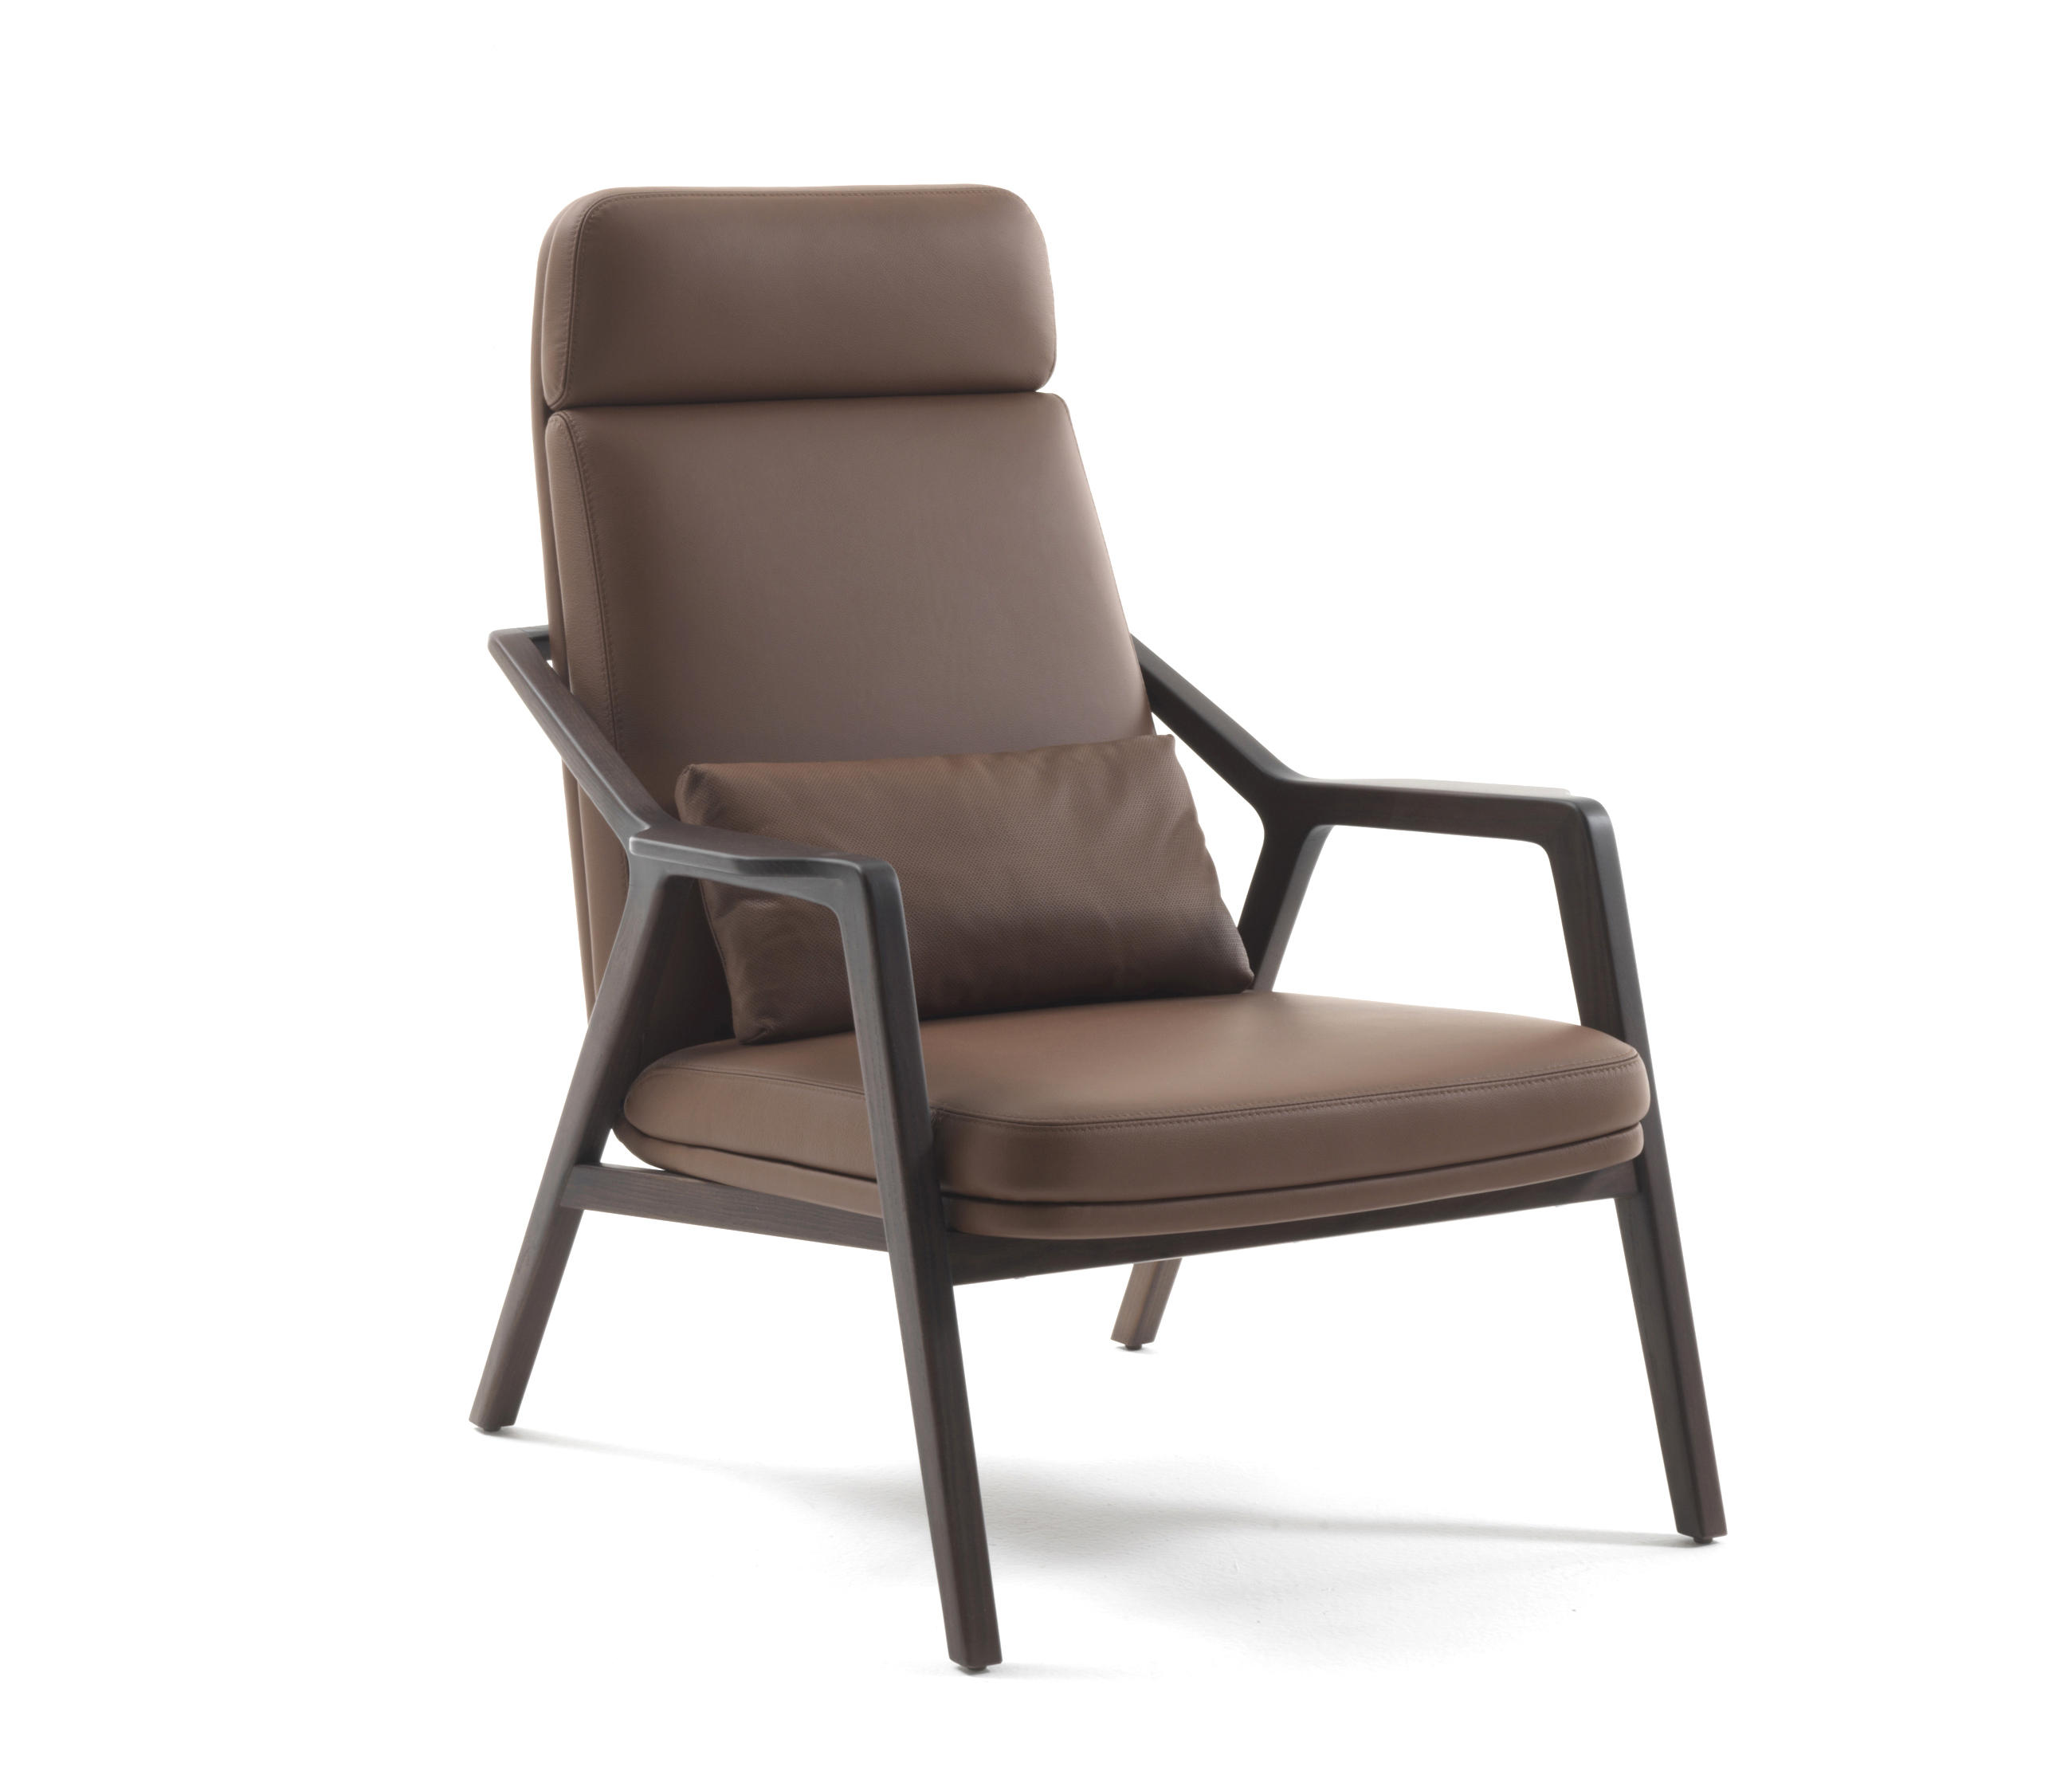 Loretta By Porada Lounge Chairs